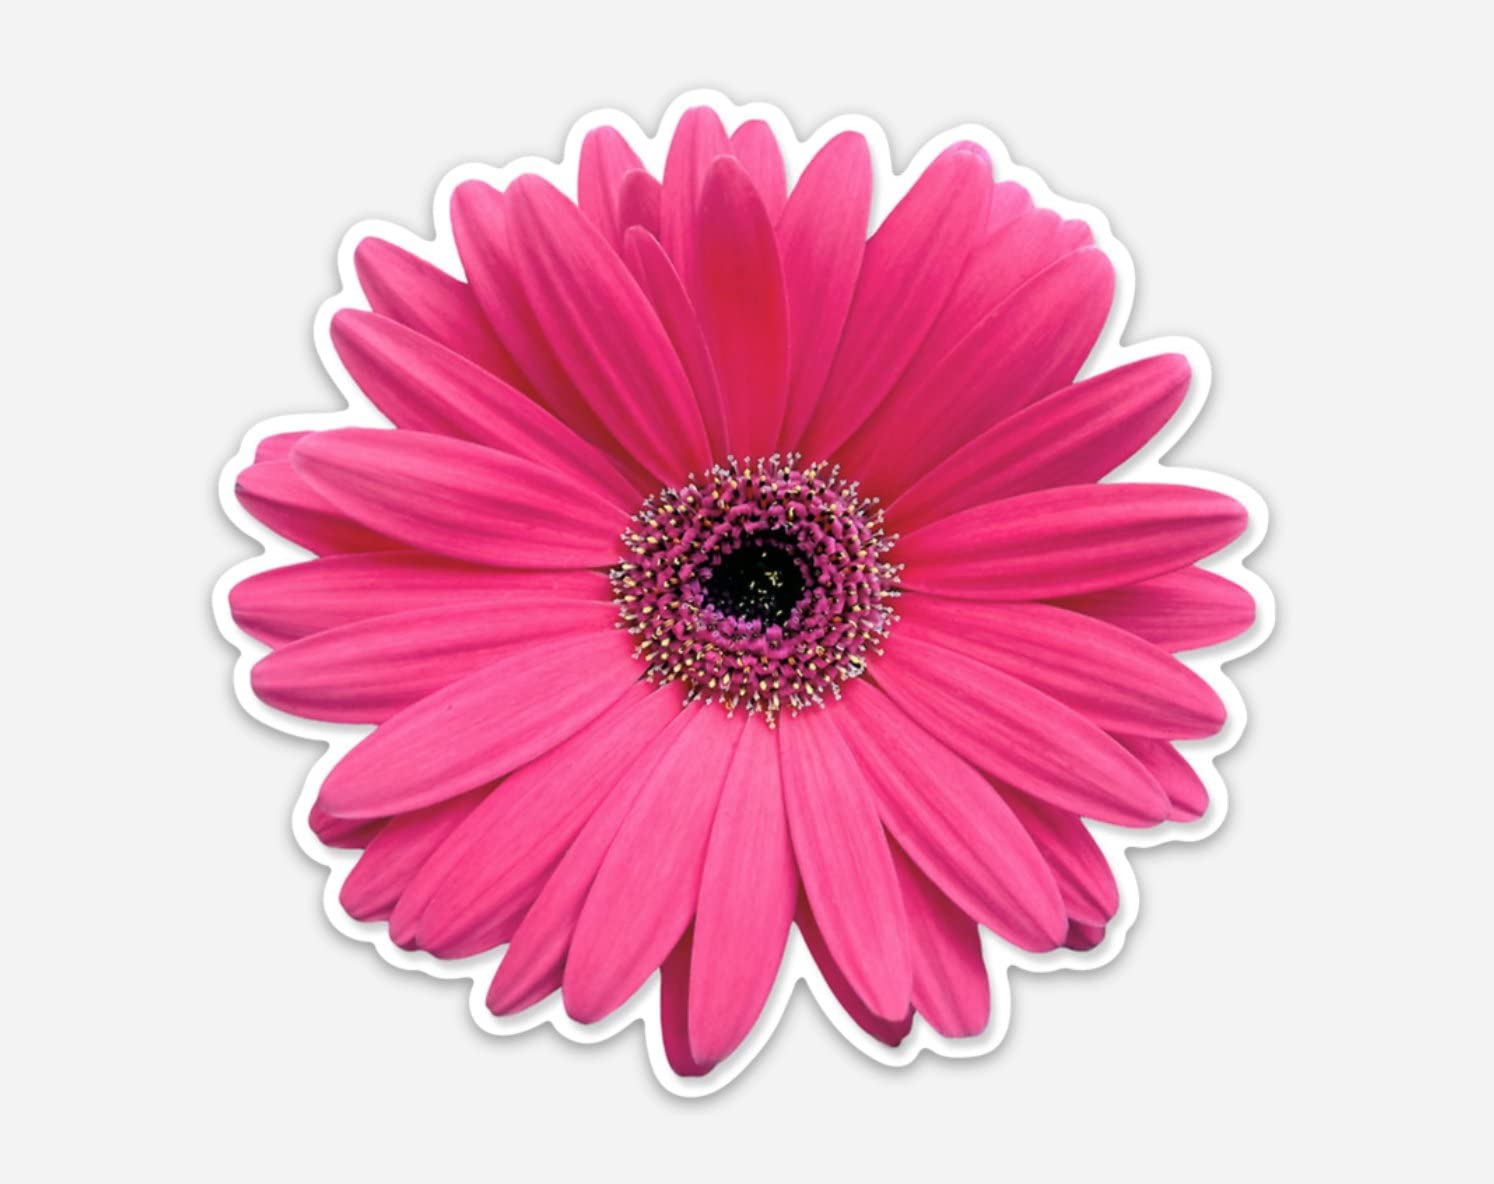 "Dark Pink Gerbera Daisy Laptop Wall Bumper Window Sticker 4"" by Pip and Co"